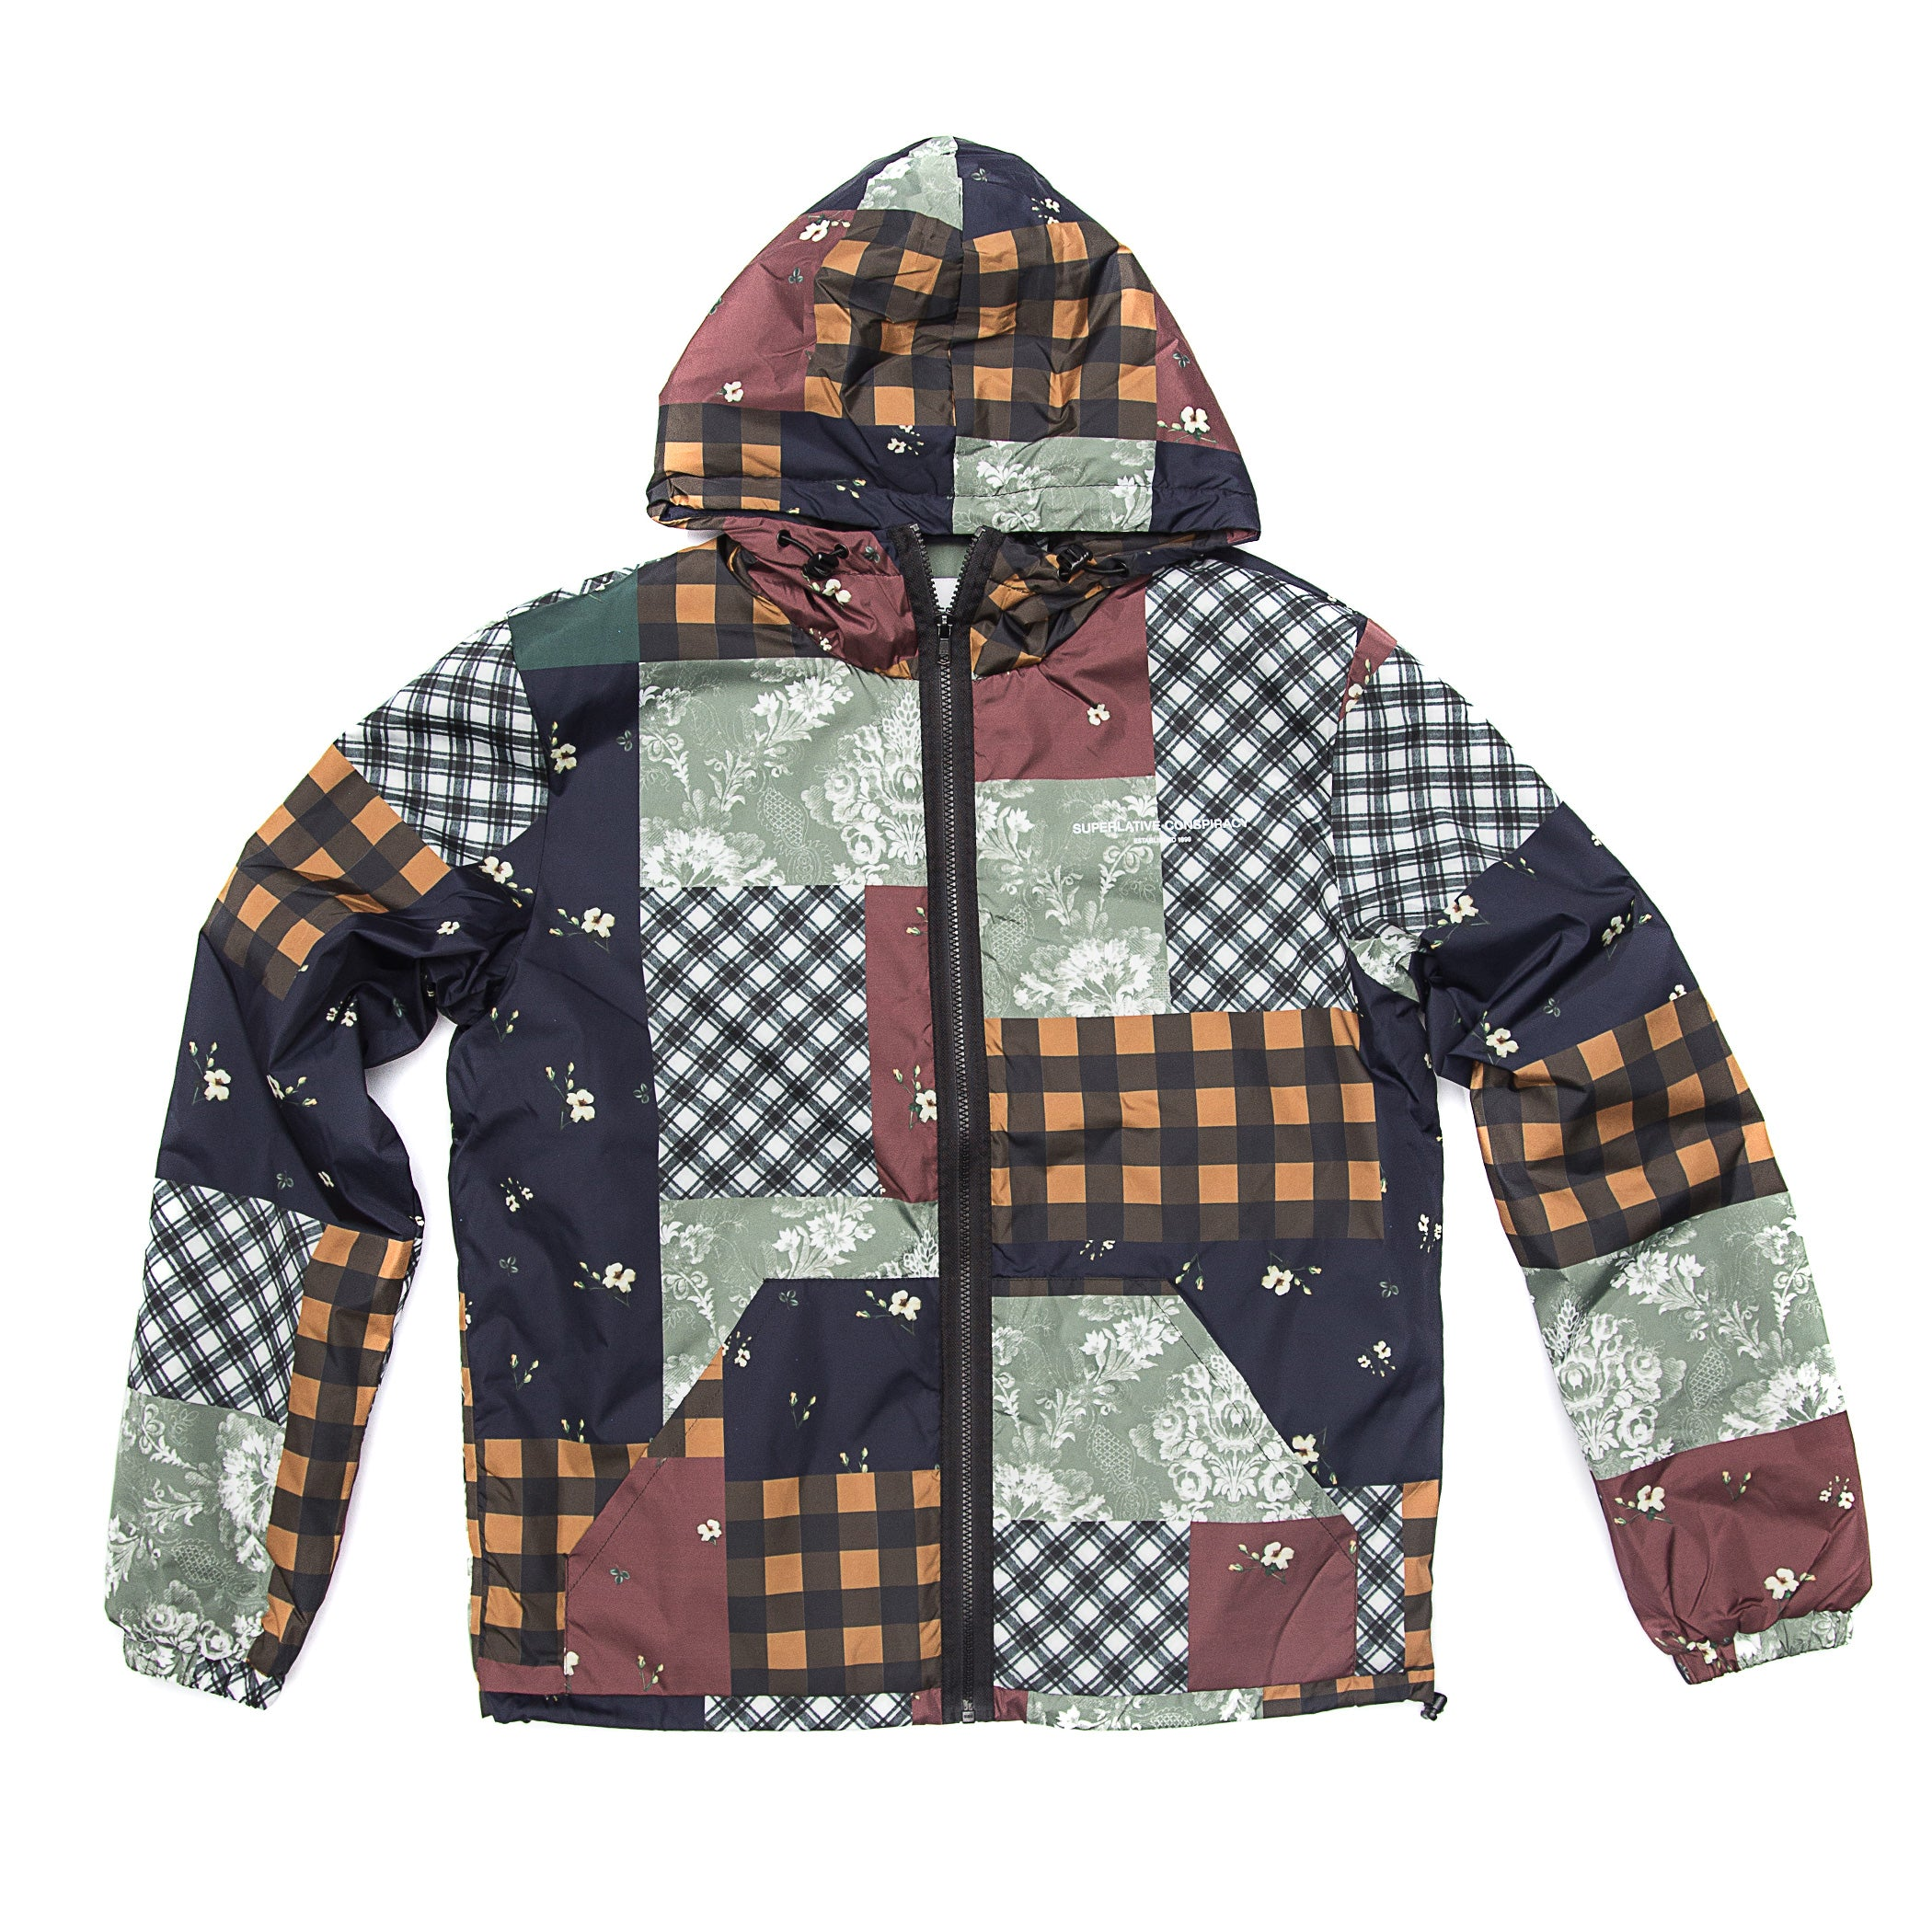 WeSC - Patchwork Windbreaker